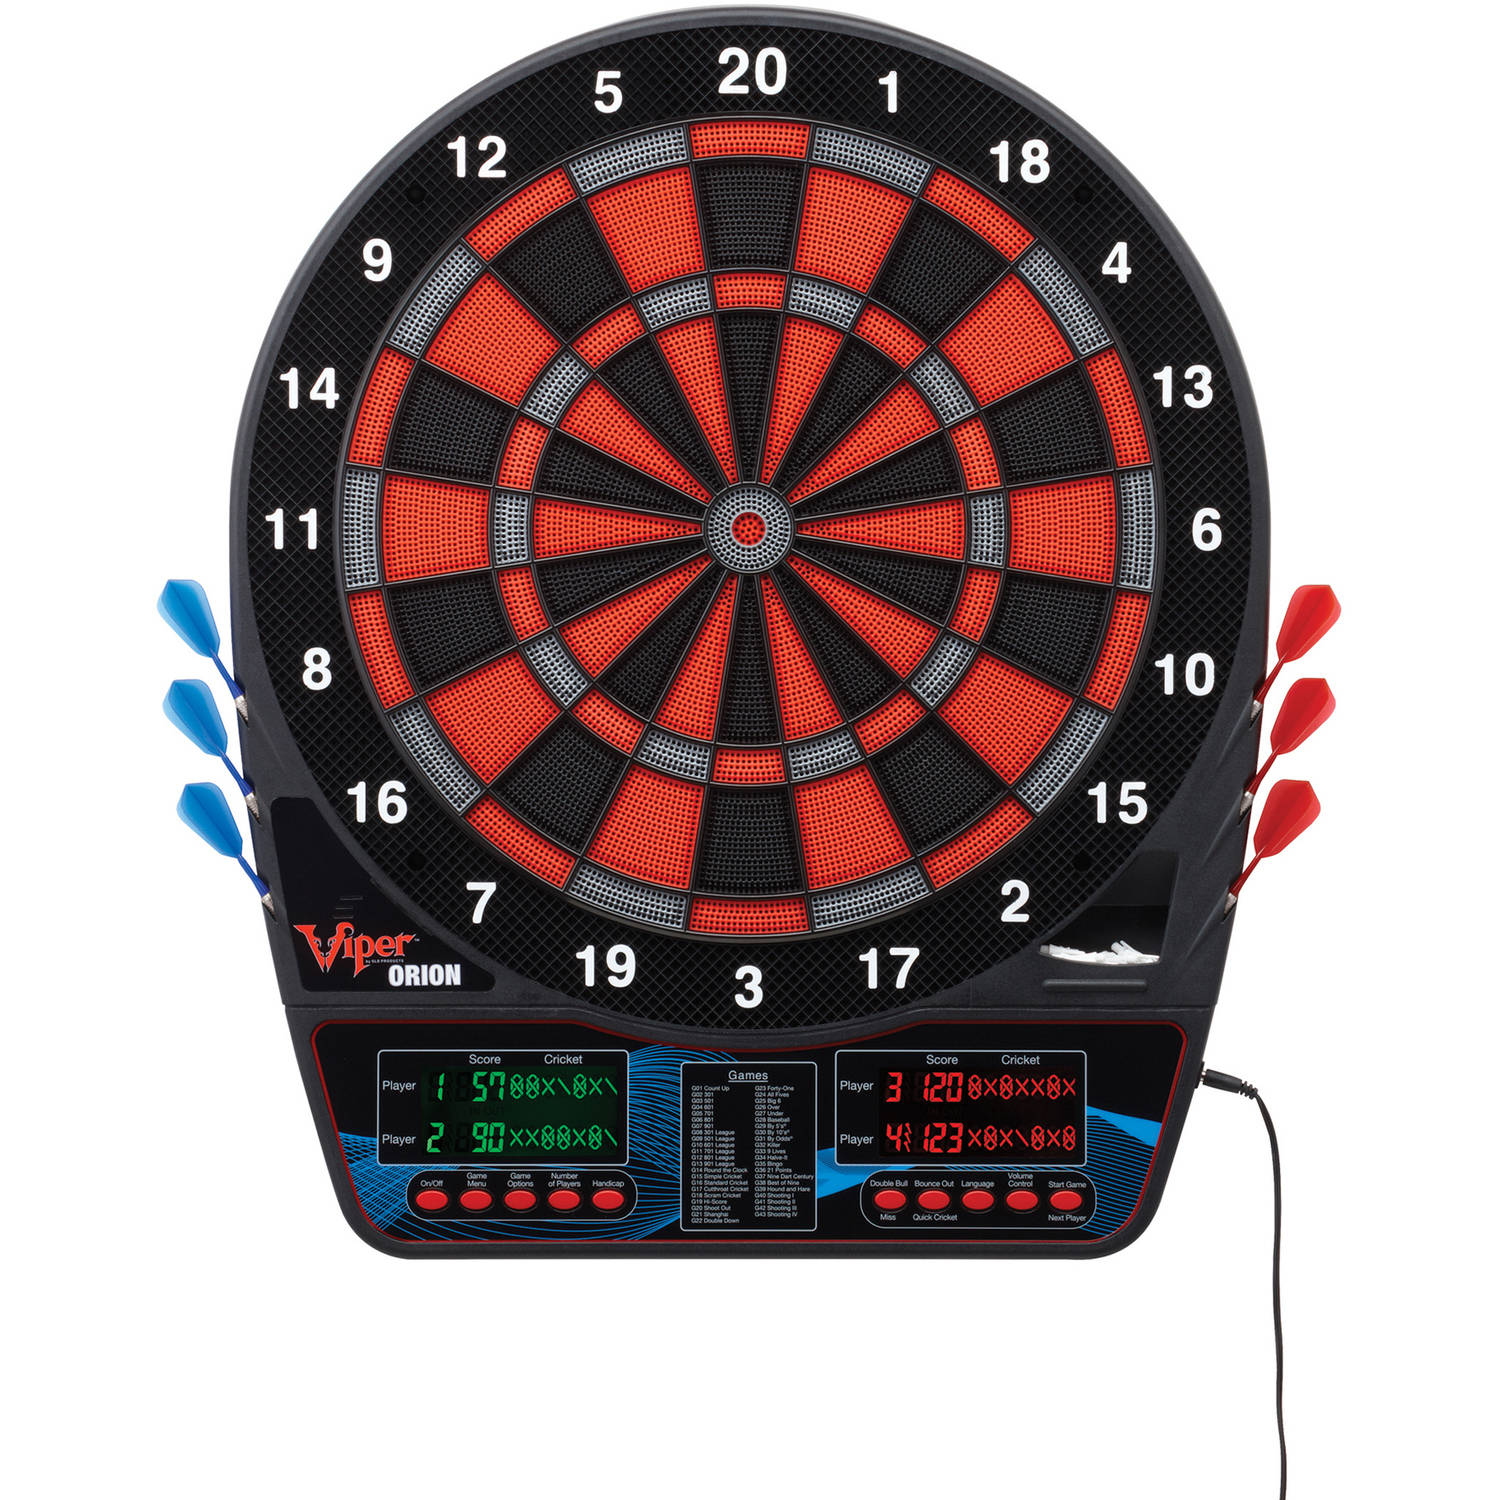 Viper Orion Electronic Dartboard by Generic